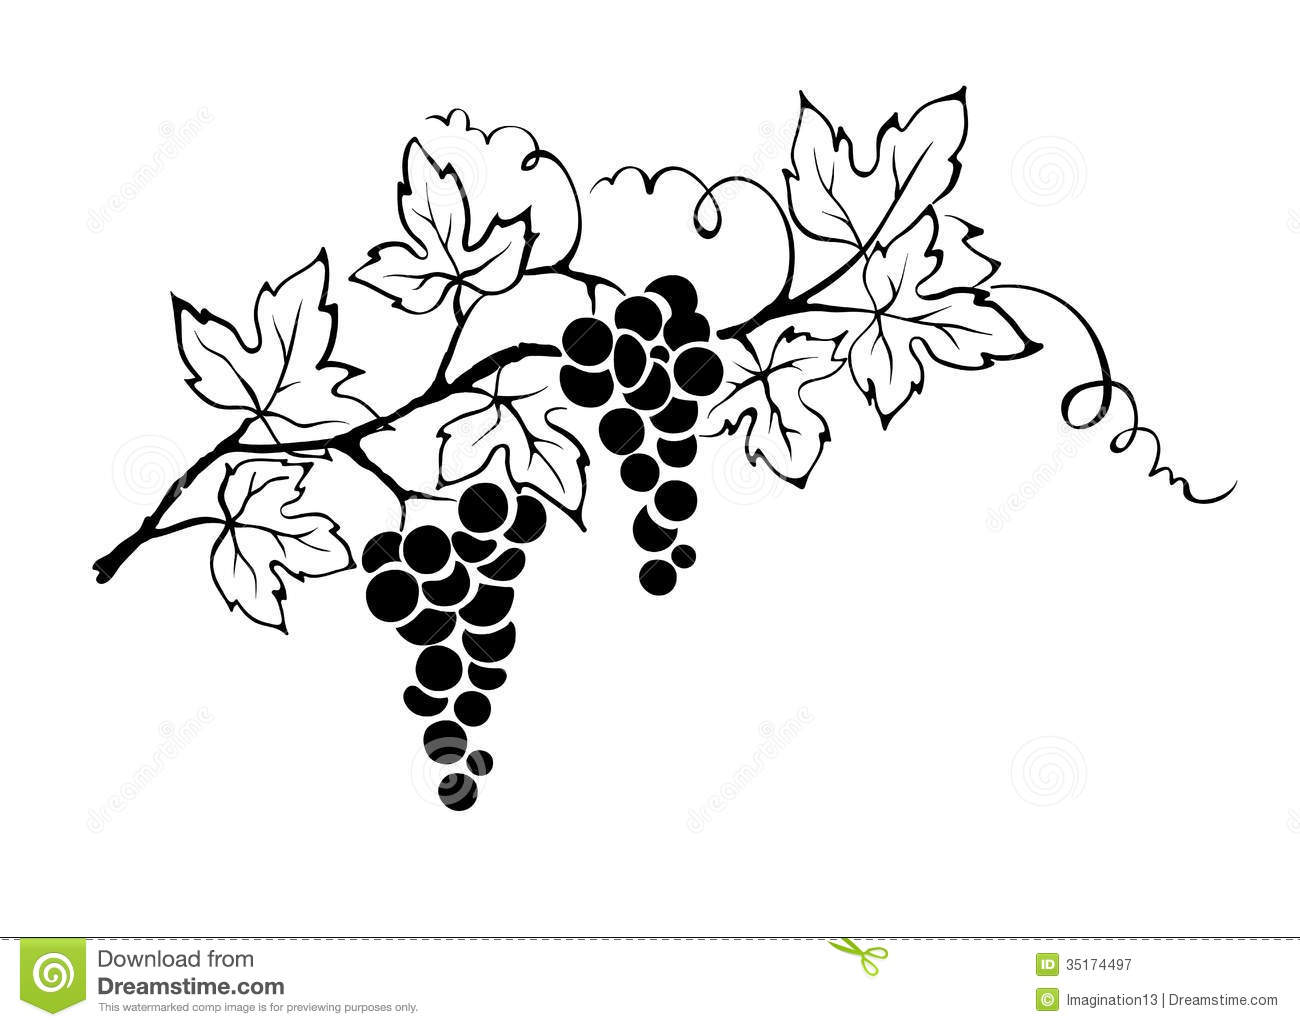 image freeuse stock Look at clip art. Grapevine clipart artwork